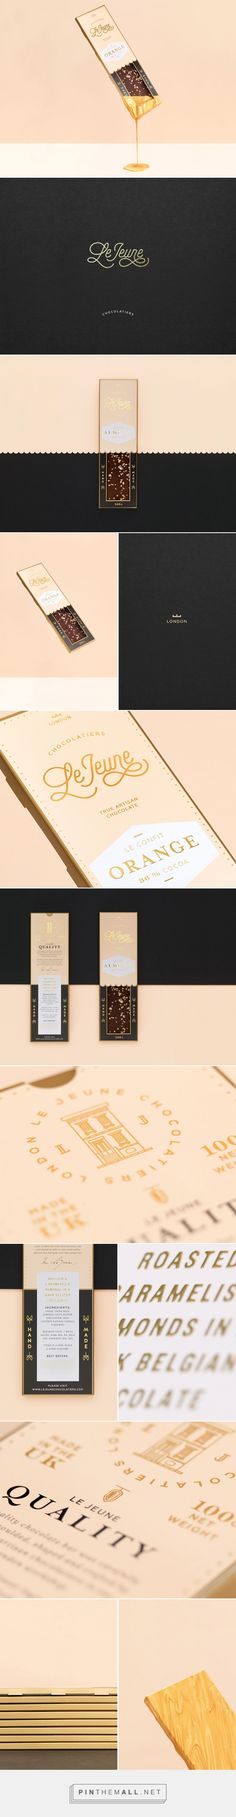 Le Jeune - Packaging of the World - Creative Package Design Gallery - http://www.packagingoftheworld.com/2017/03/le-jeune.html